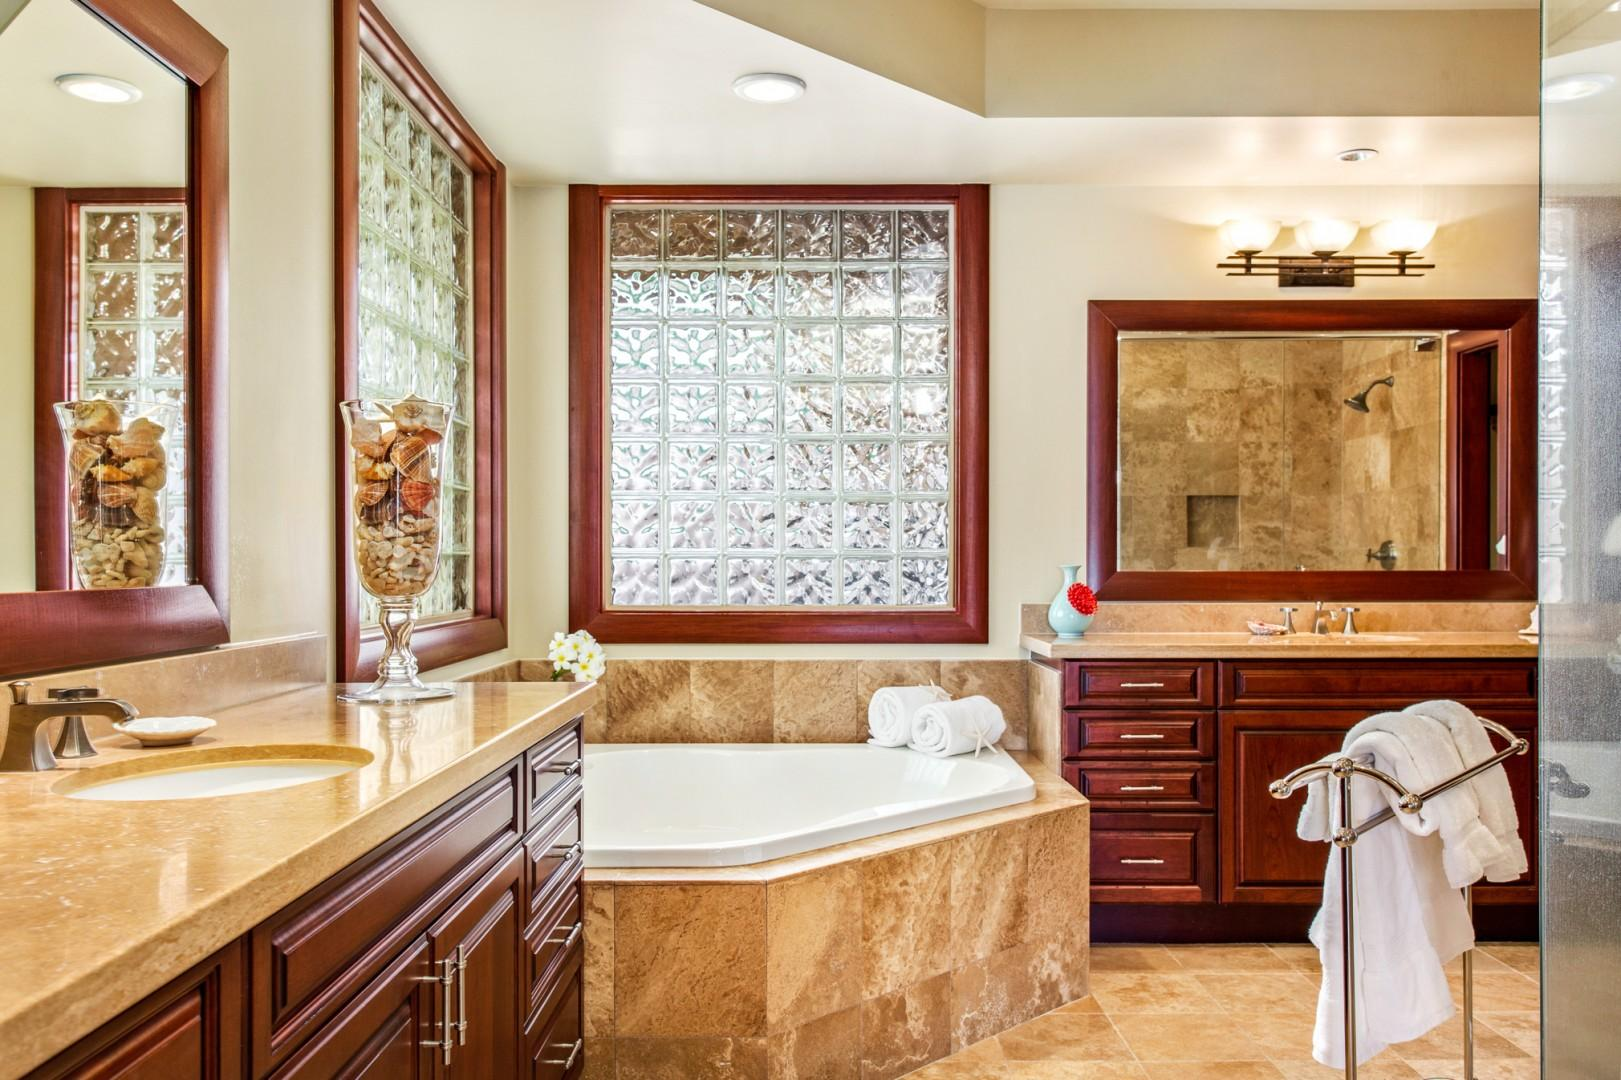 Master bath #2 with dual vanities, large soaking tub and glass enclosed shower.